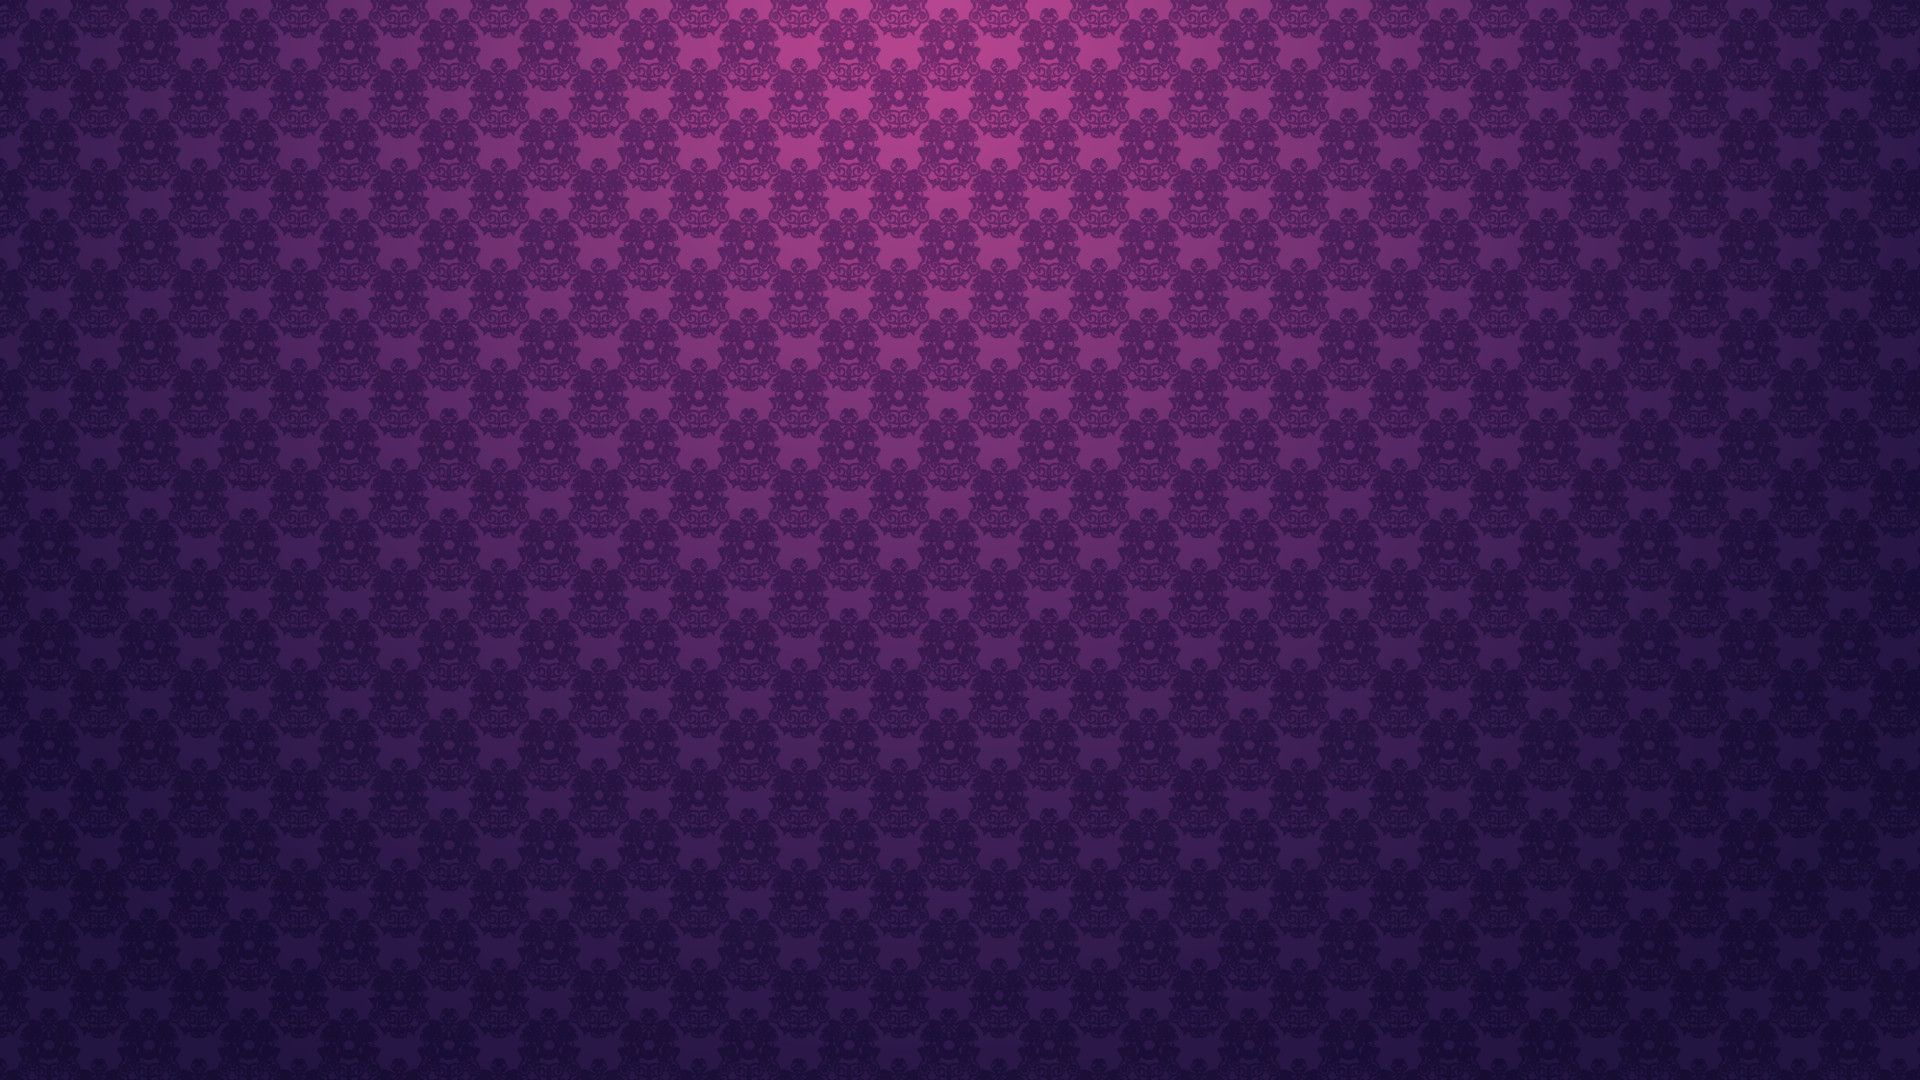 1920x1080 57+ Royal Purple Wallpapers on WallpaperPlay